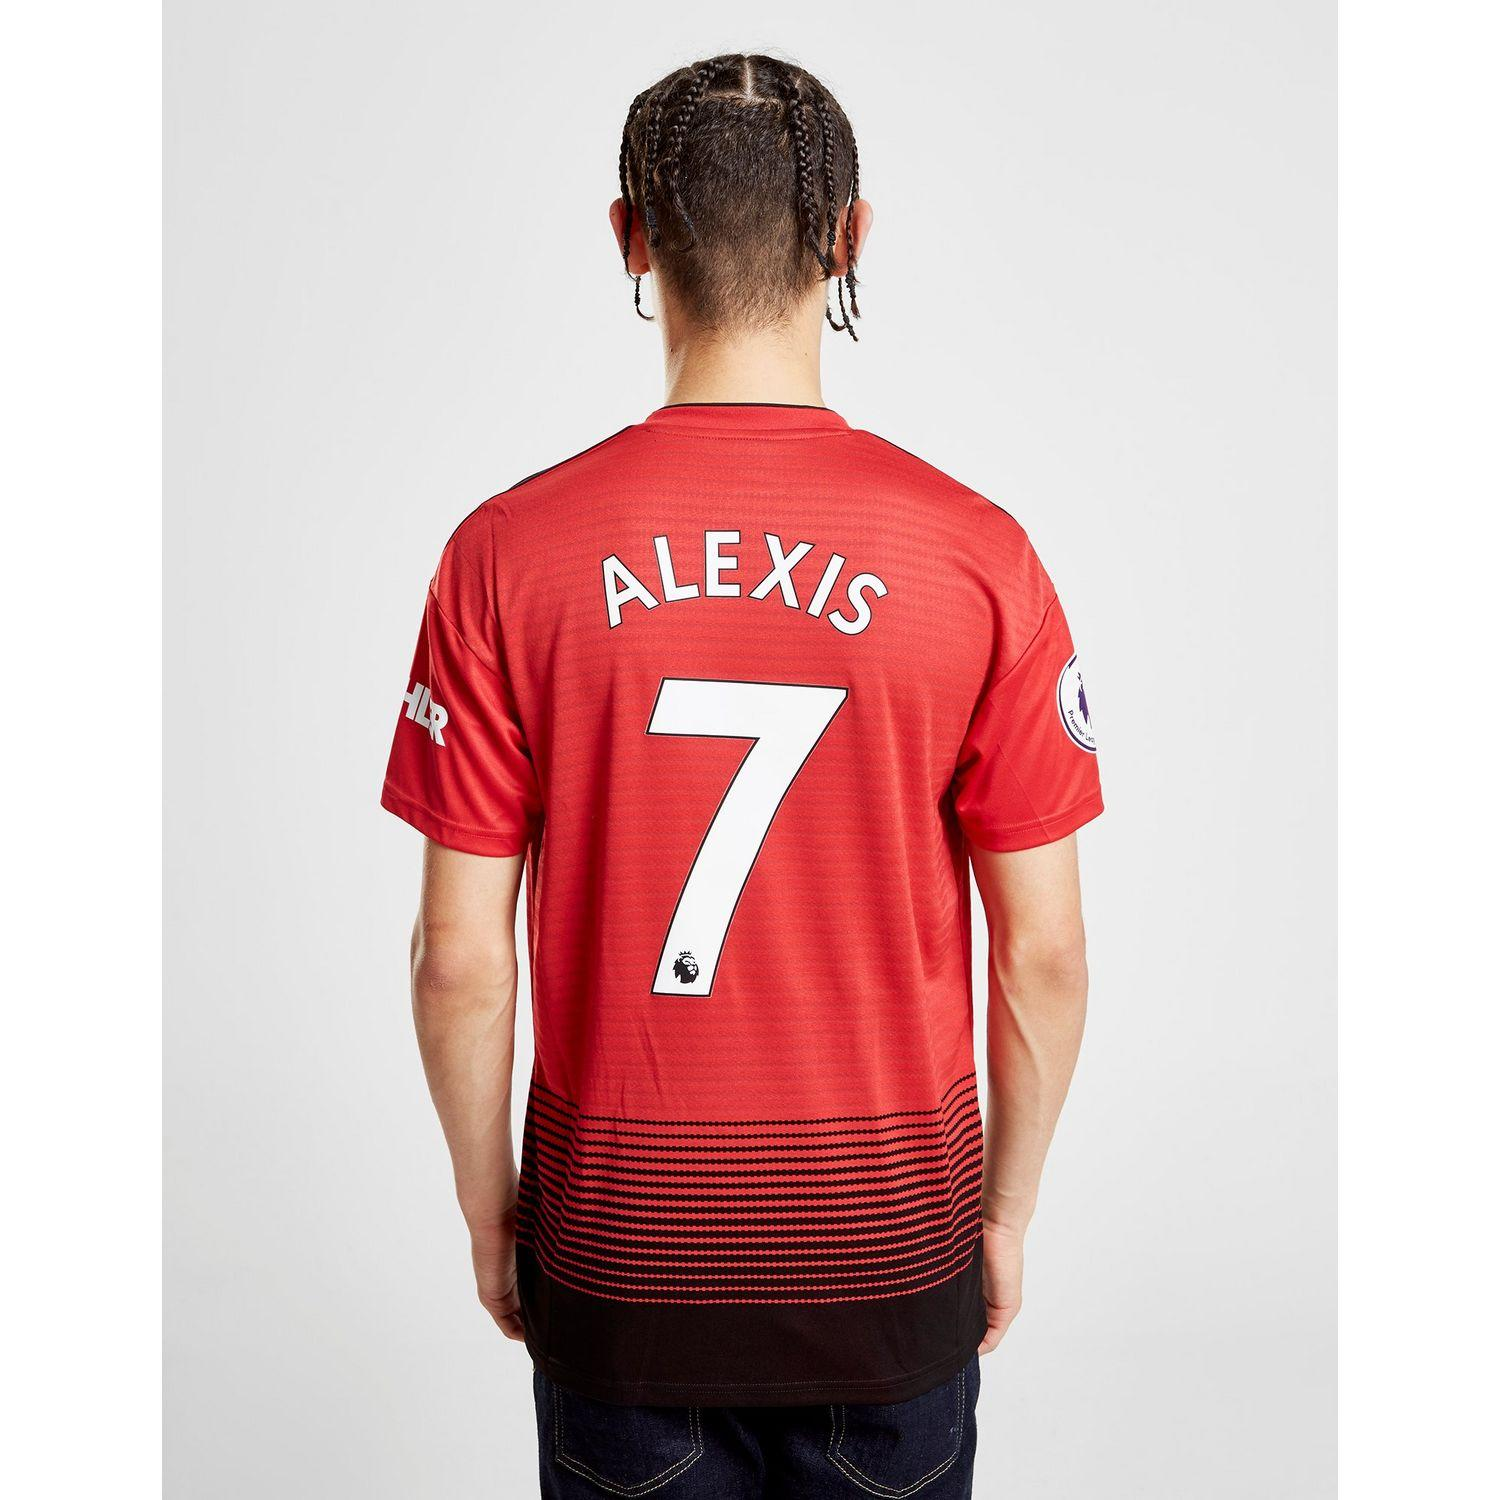 pretty nice 0e0aa 2d795 adidas Synthetic Manchester United Fc 2018/19 Alexis #7 Home ...